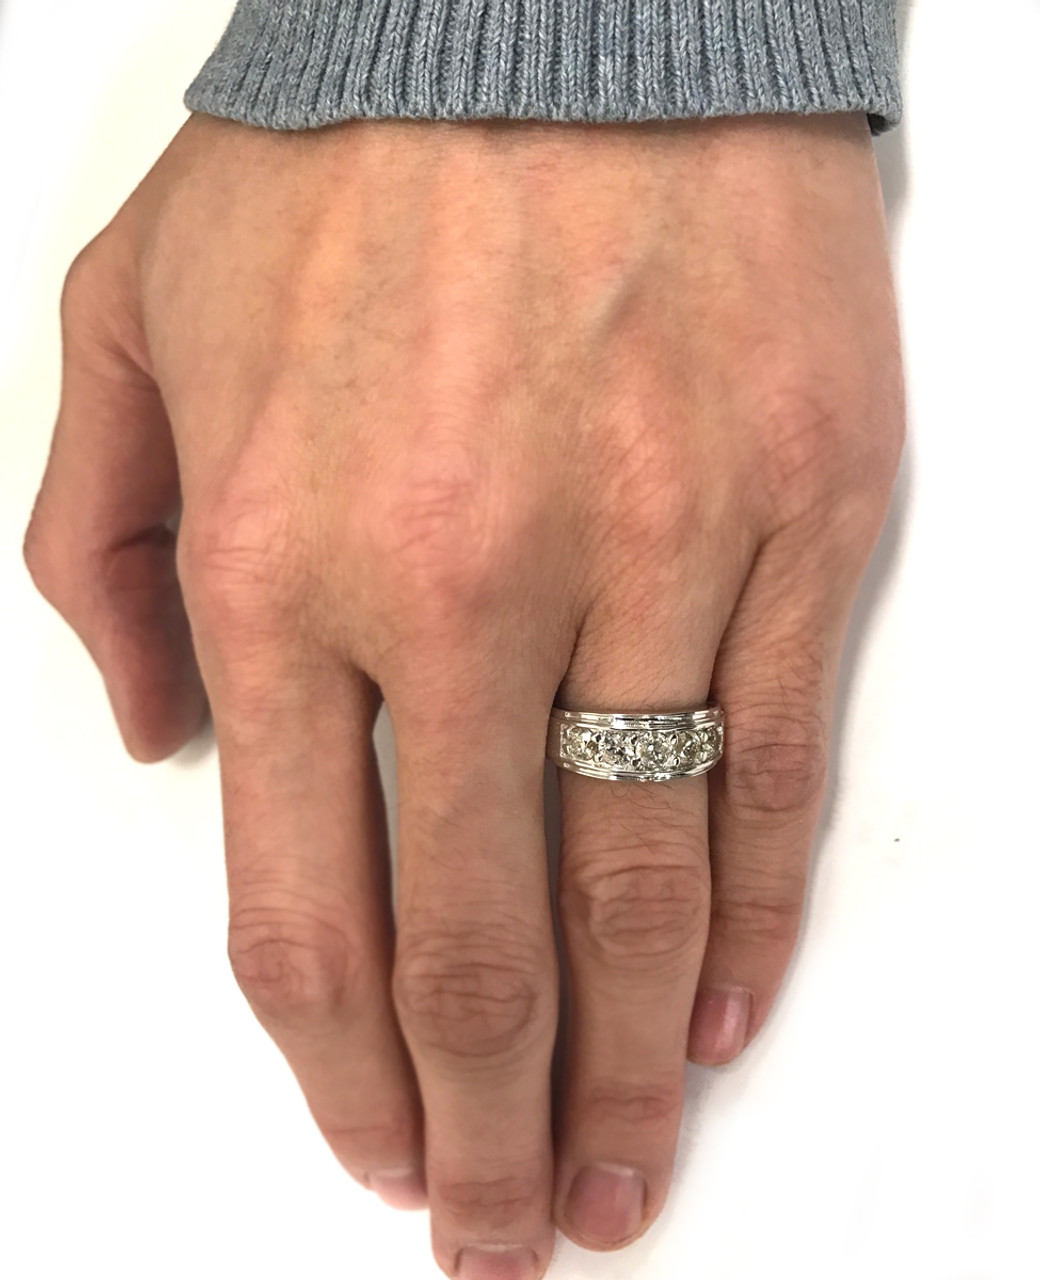 12c6909027ffde 1 ct Mens Diamond Five Stone Wedding Ring 10k White Gold (G/H, I1). MR0278.  2 Reviews  http://partnerconnect.pompeii3.com/appfiles/itemimages/58ca96bb762d0.